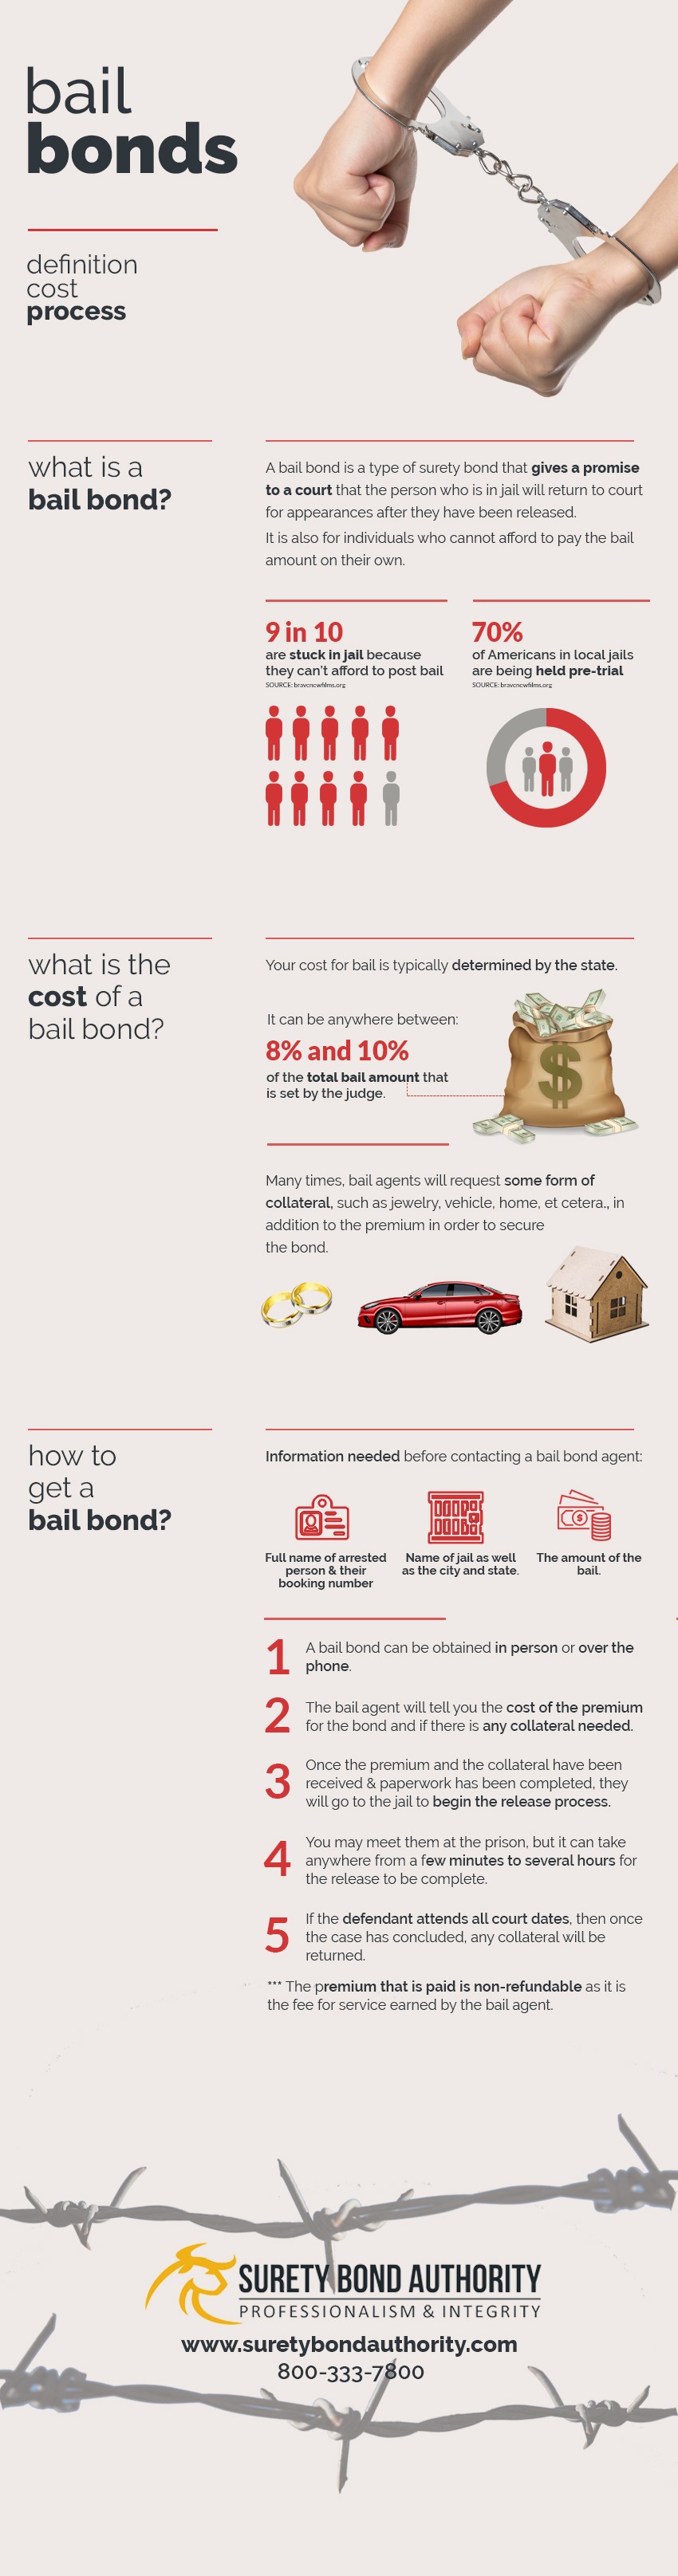 Bail Bonds Infographic